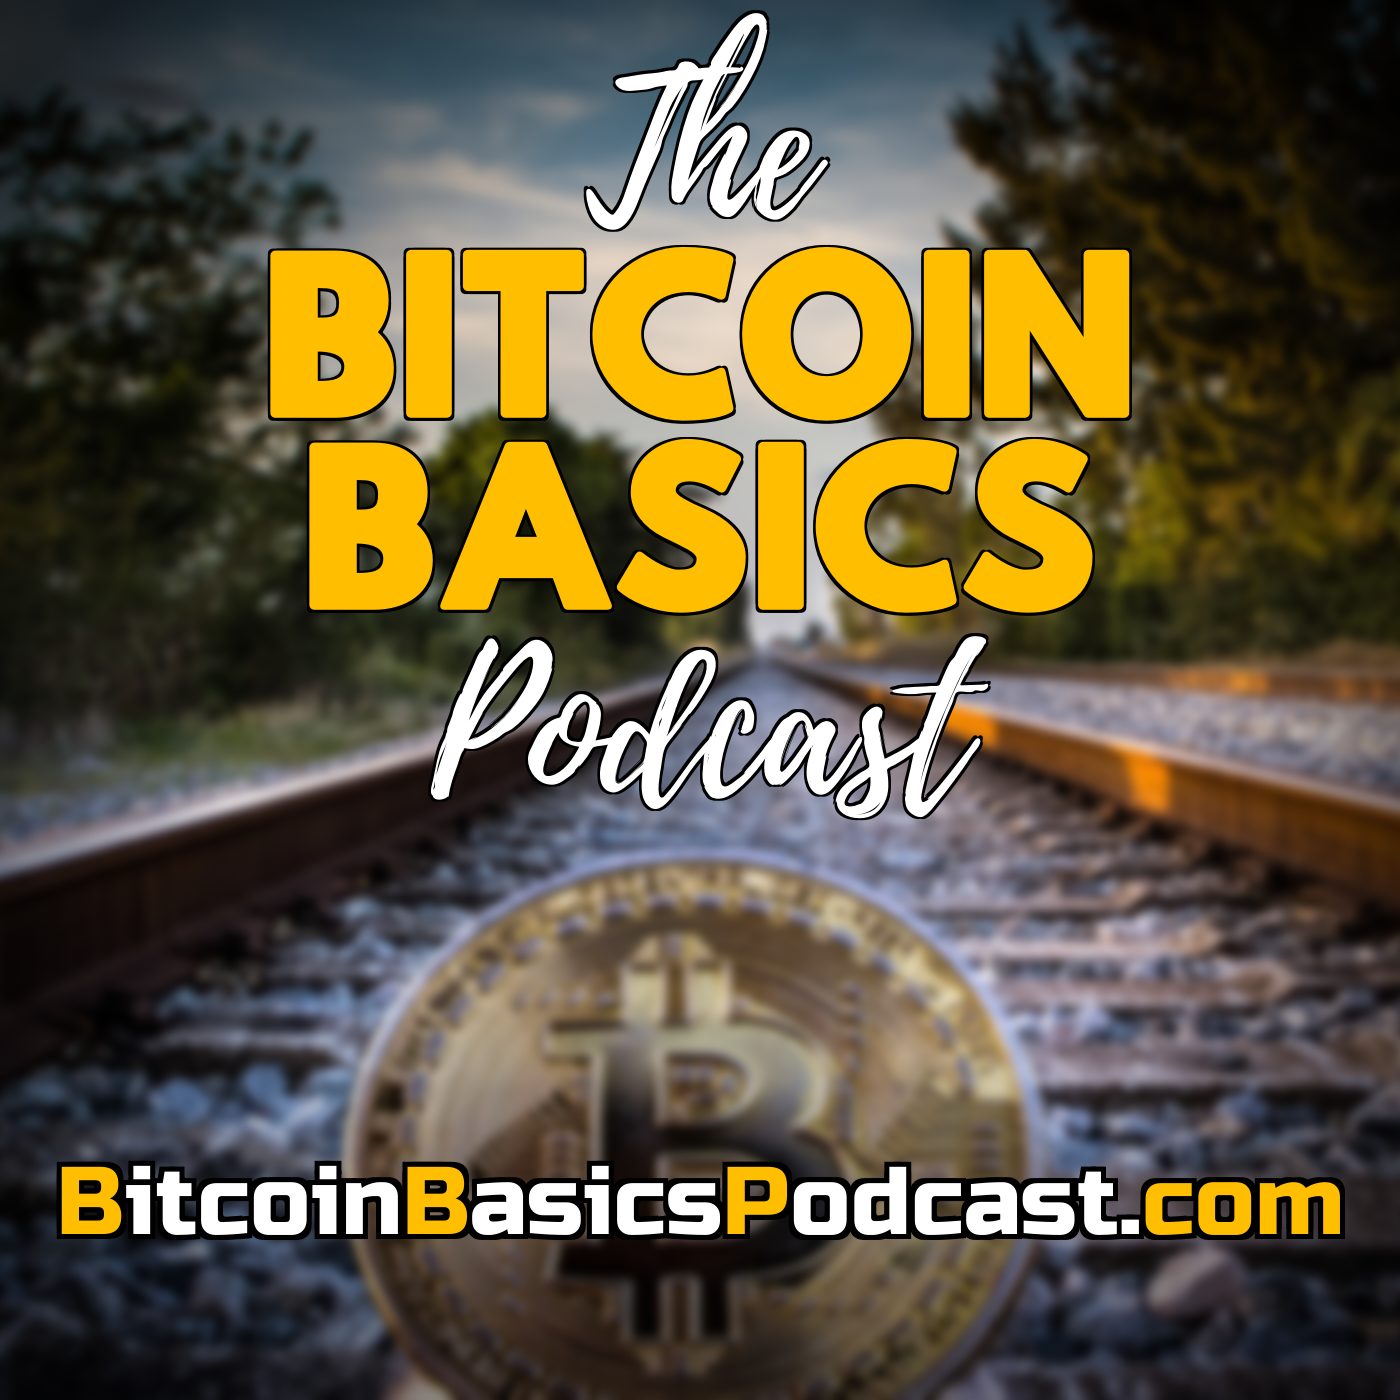 Bitcoin Basics Podcast